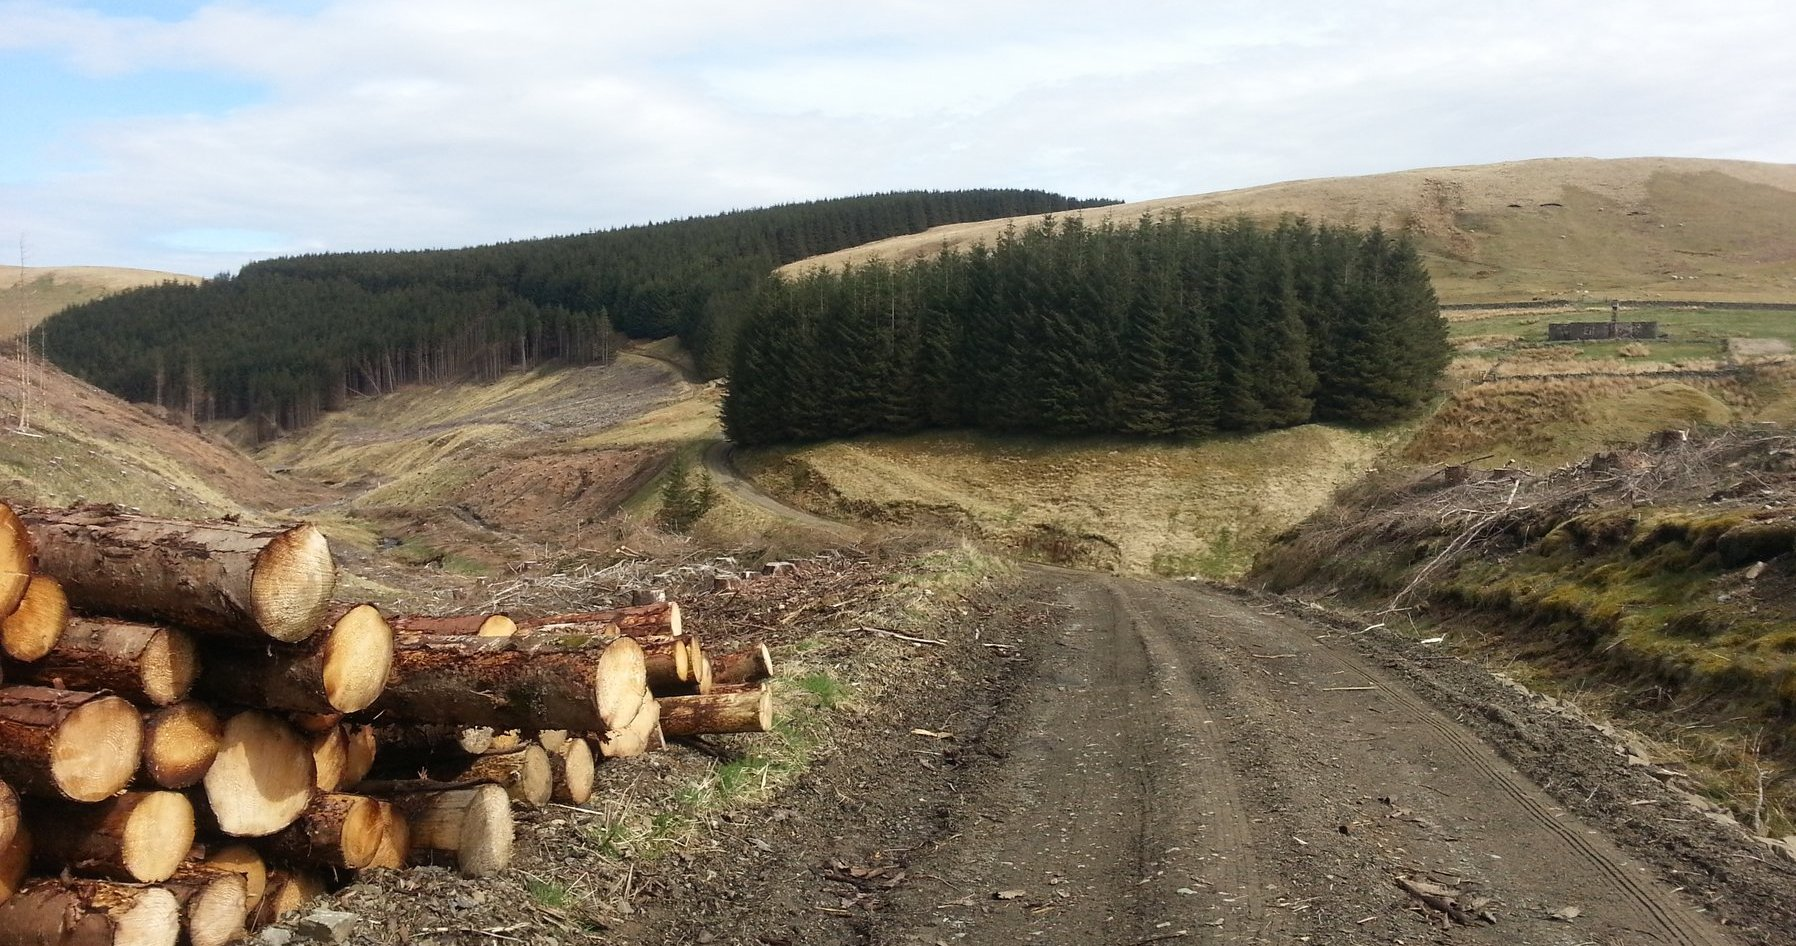 Logging piles beside the road in Craigy Cleugh